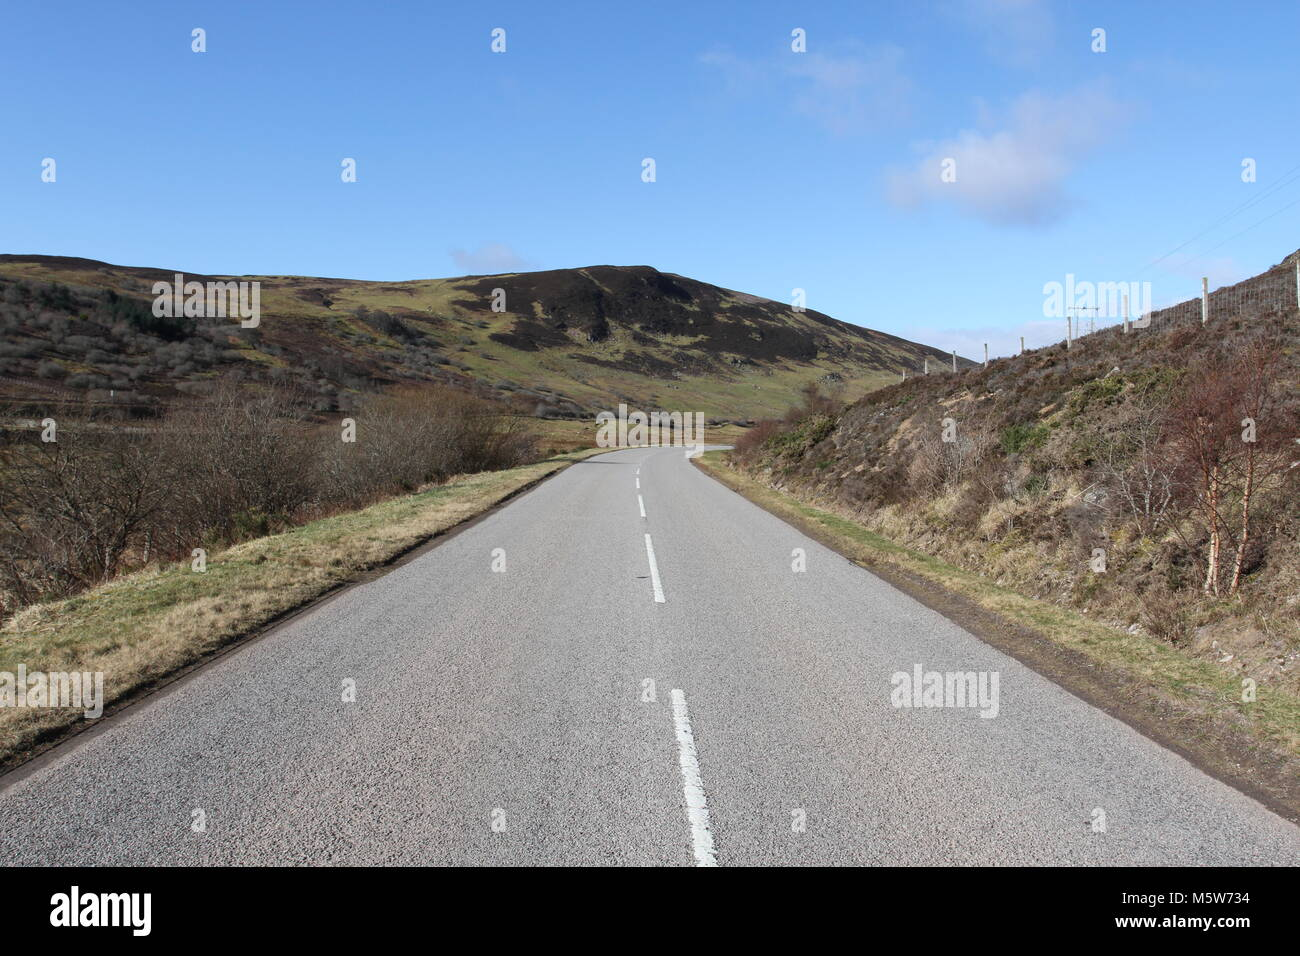 A839 between Rogart and Lairg Caithness Scotland March 2012 - Stock Image